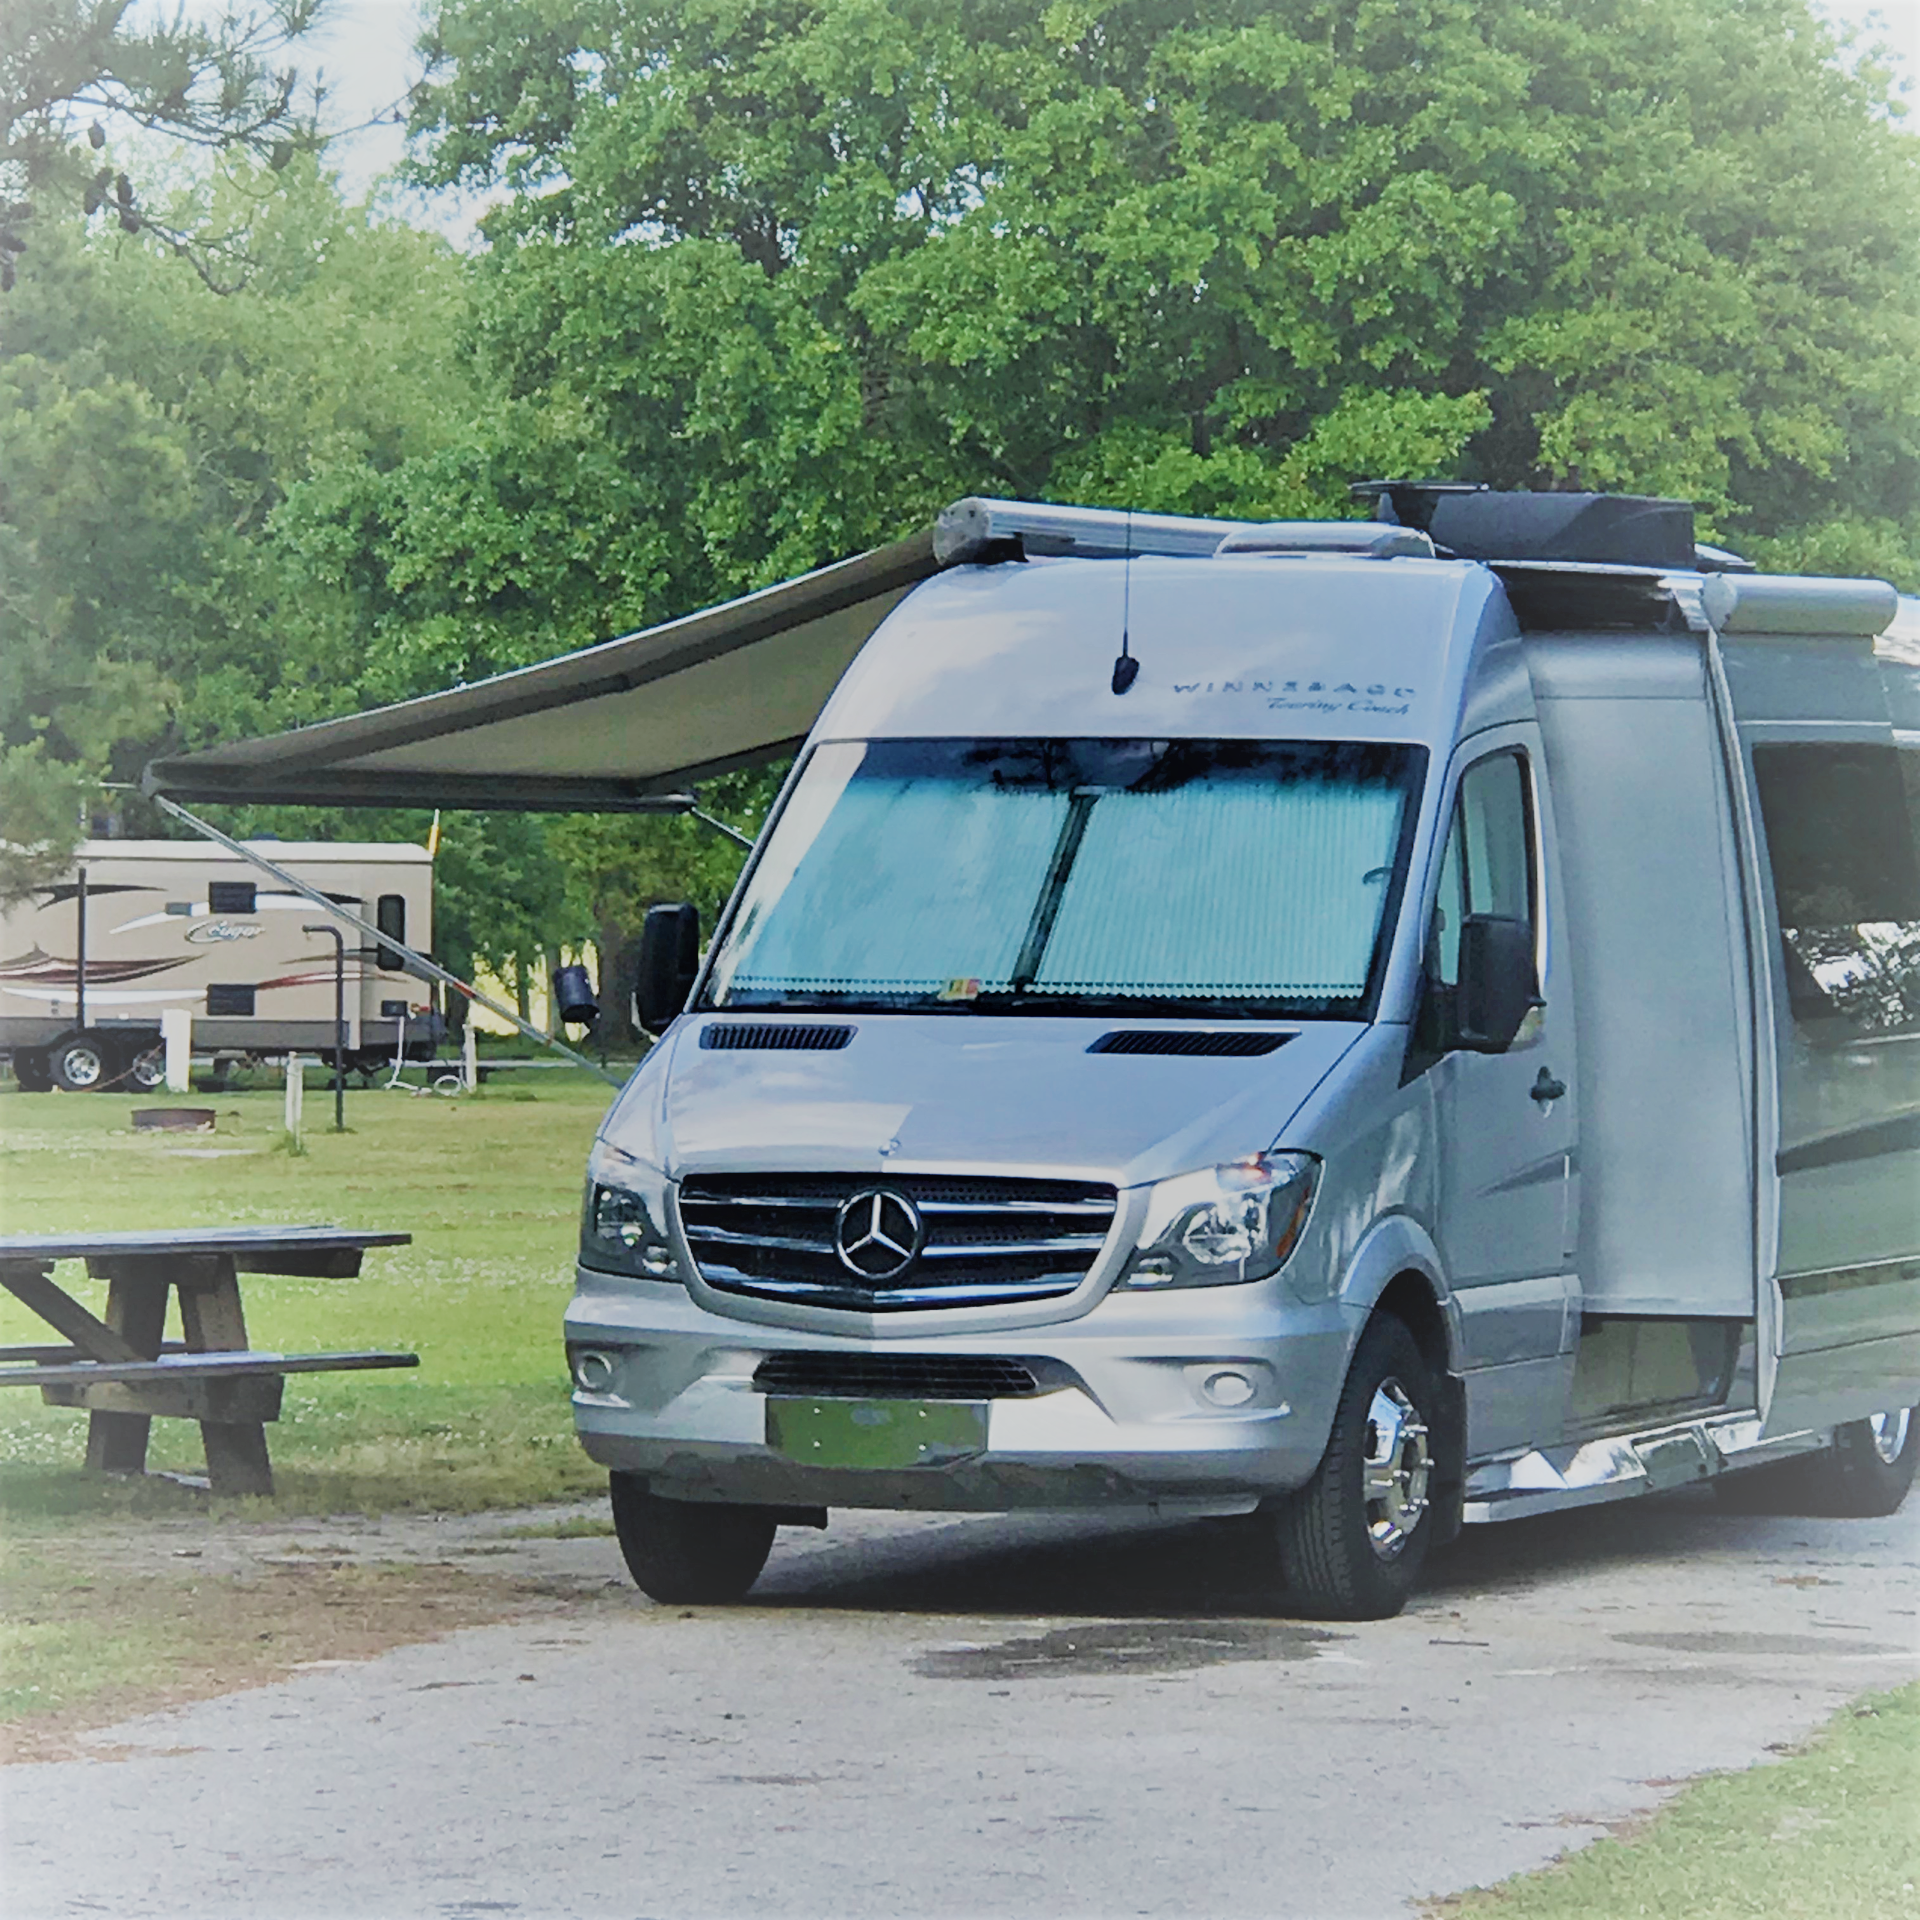 Awning with LED lights to sit under. Mercedes-Benz Winnebago Era C 2015